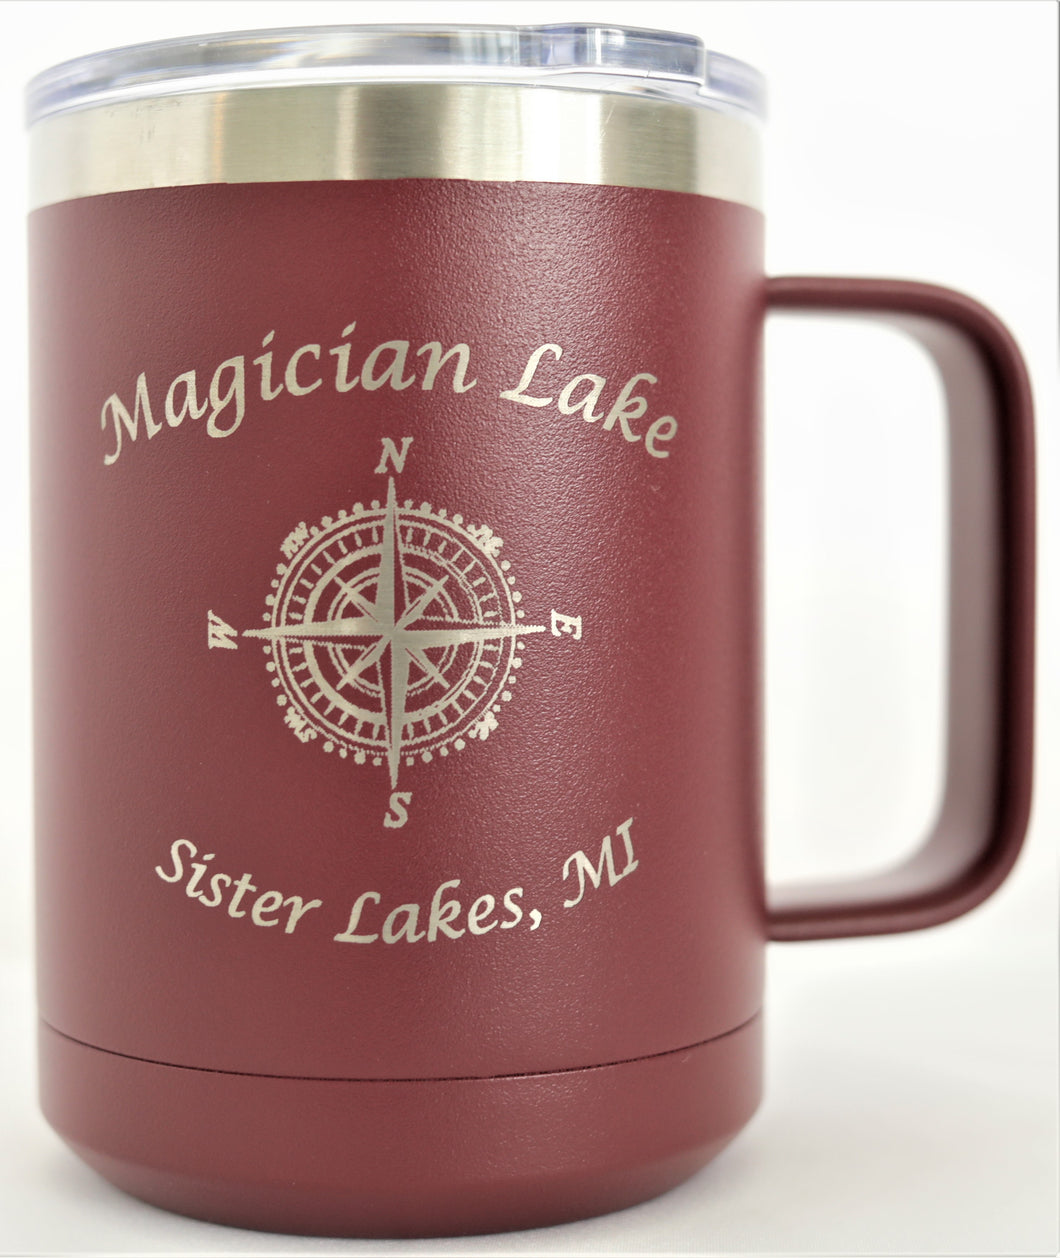 Magician Lake 16 oz. Coffee Mug